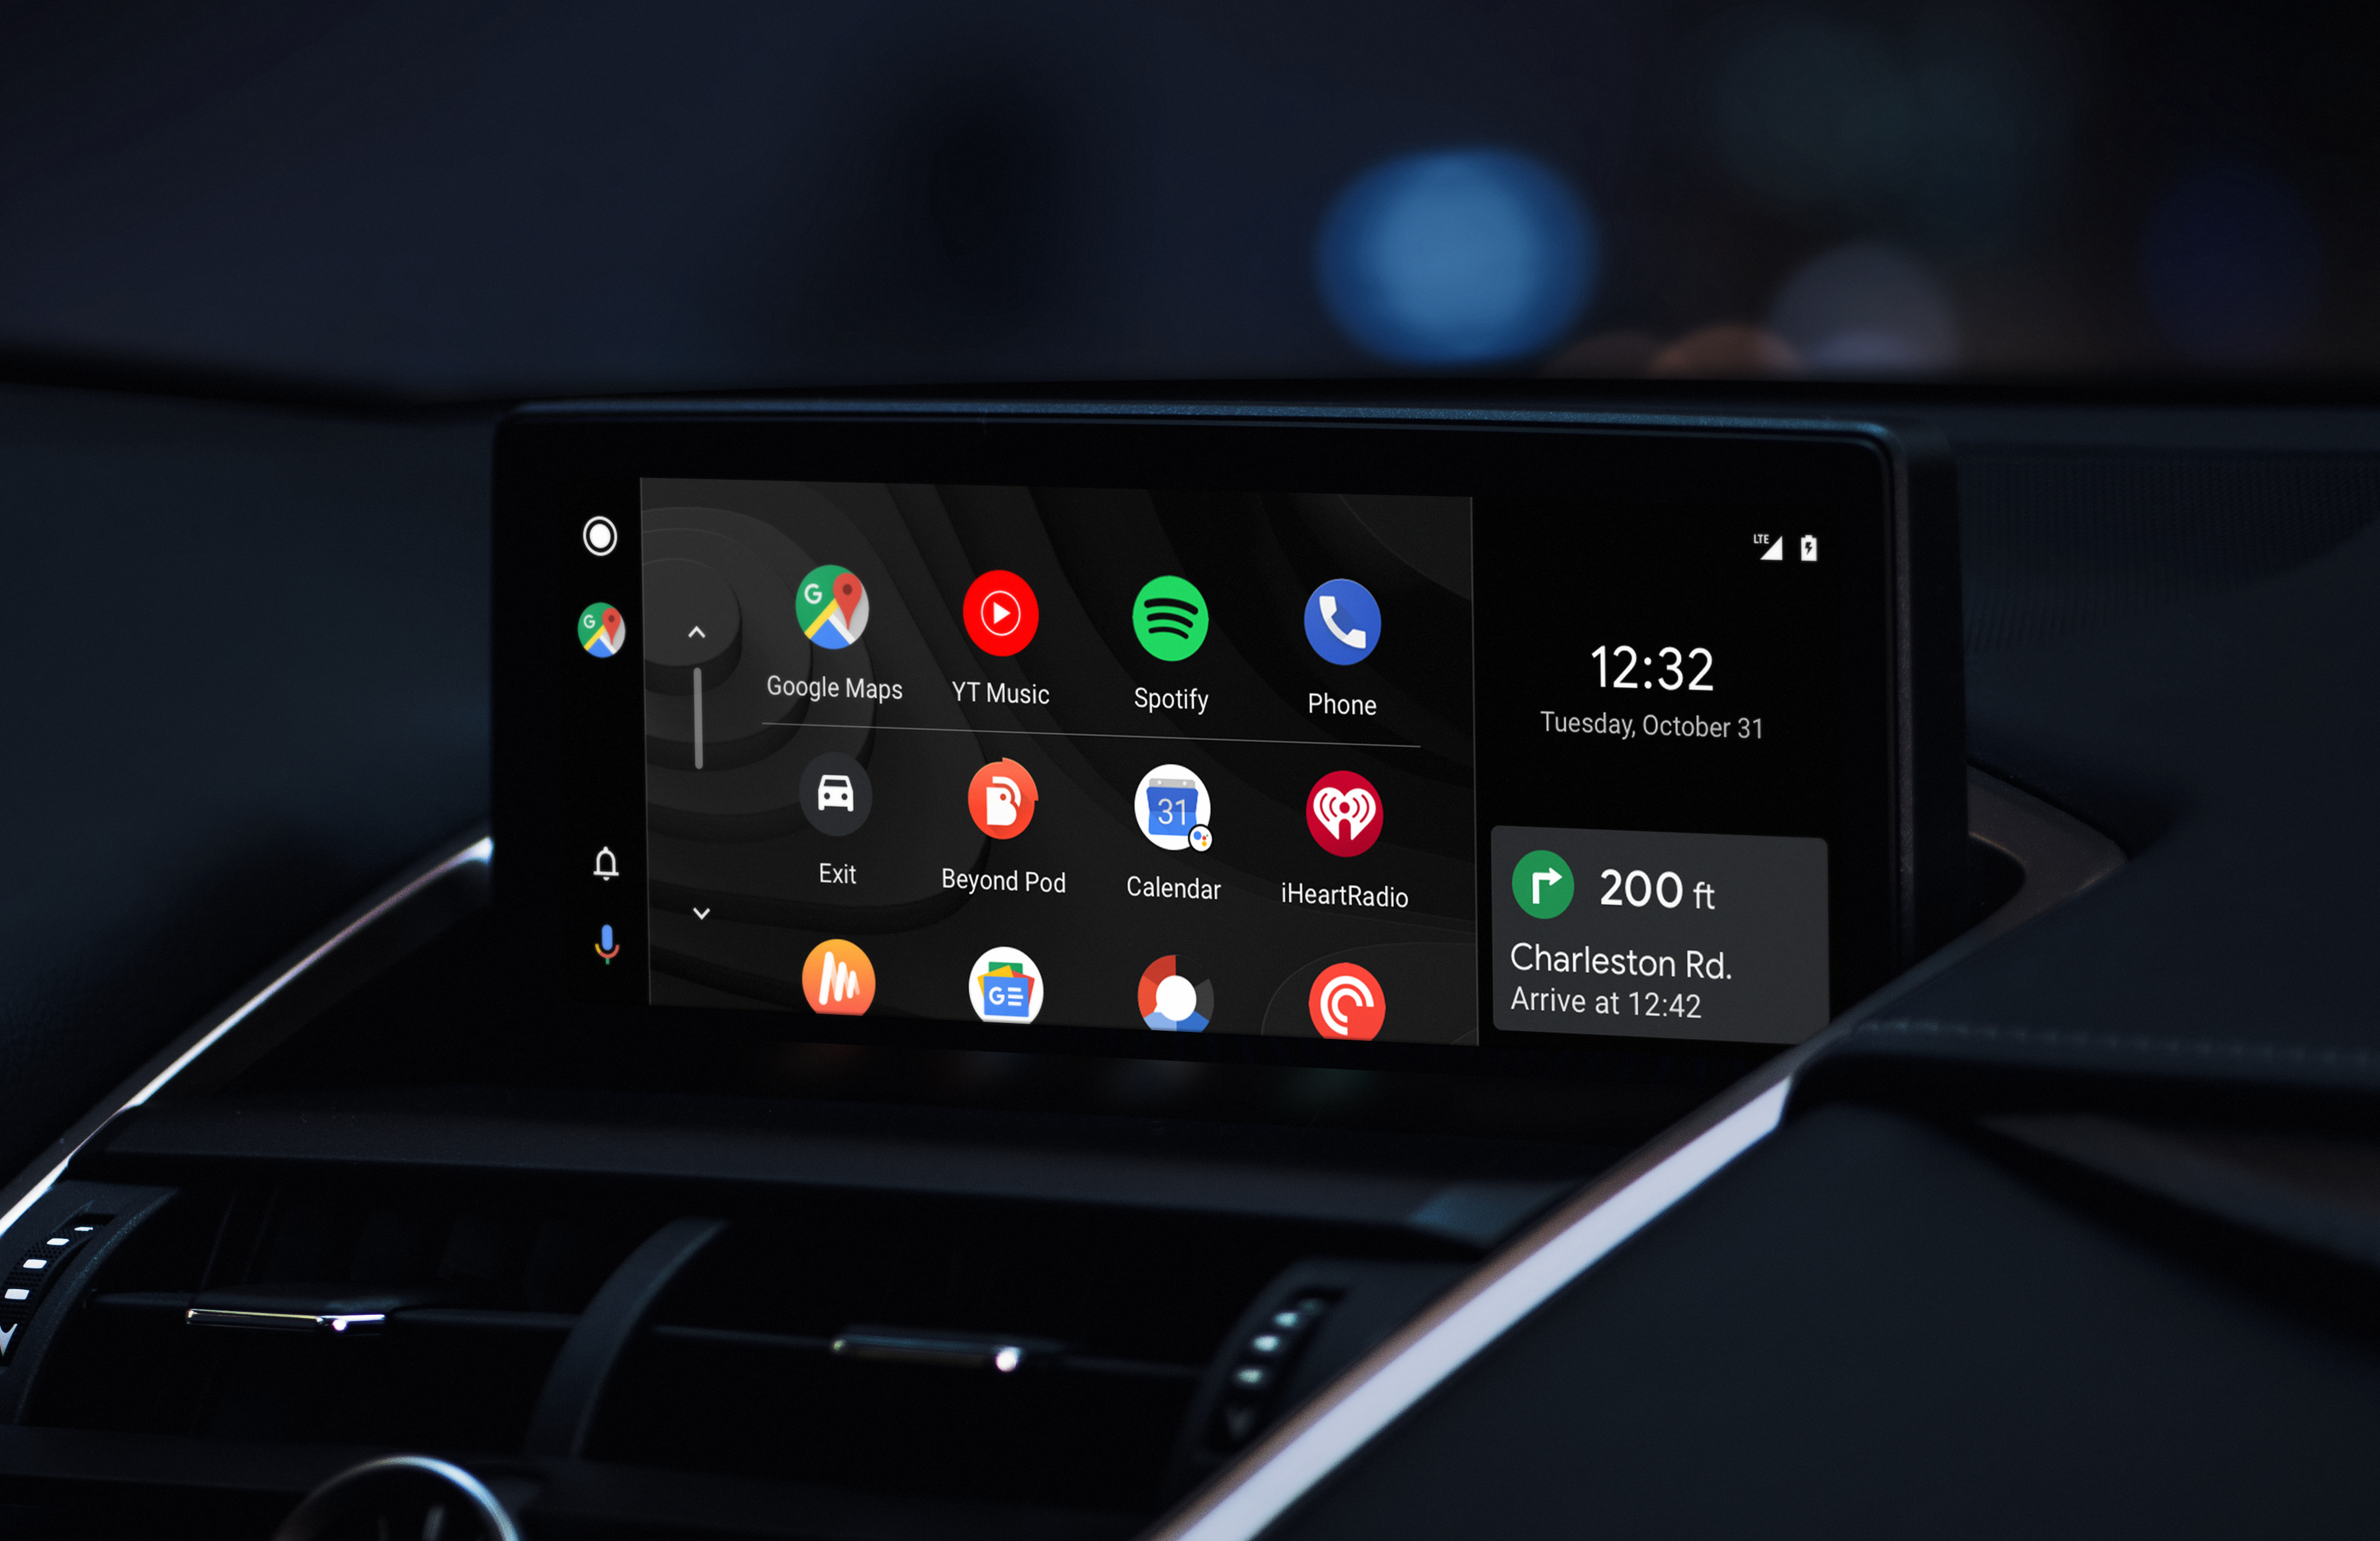 Upgrade your drive with Android Auto